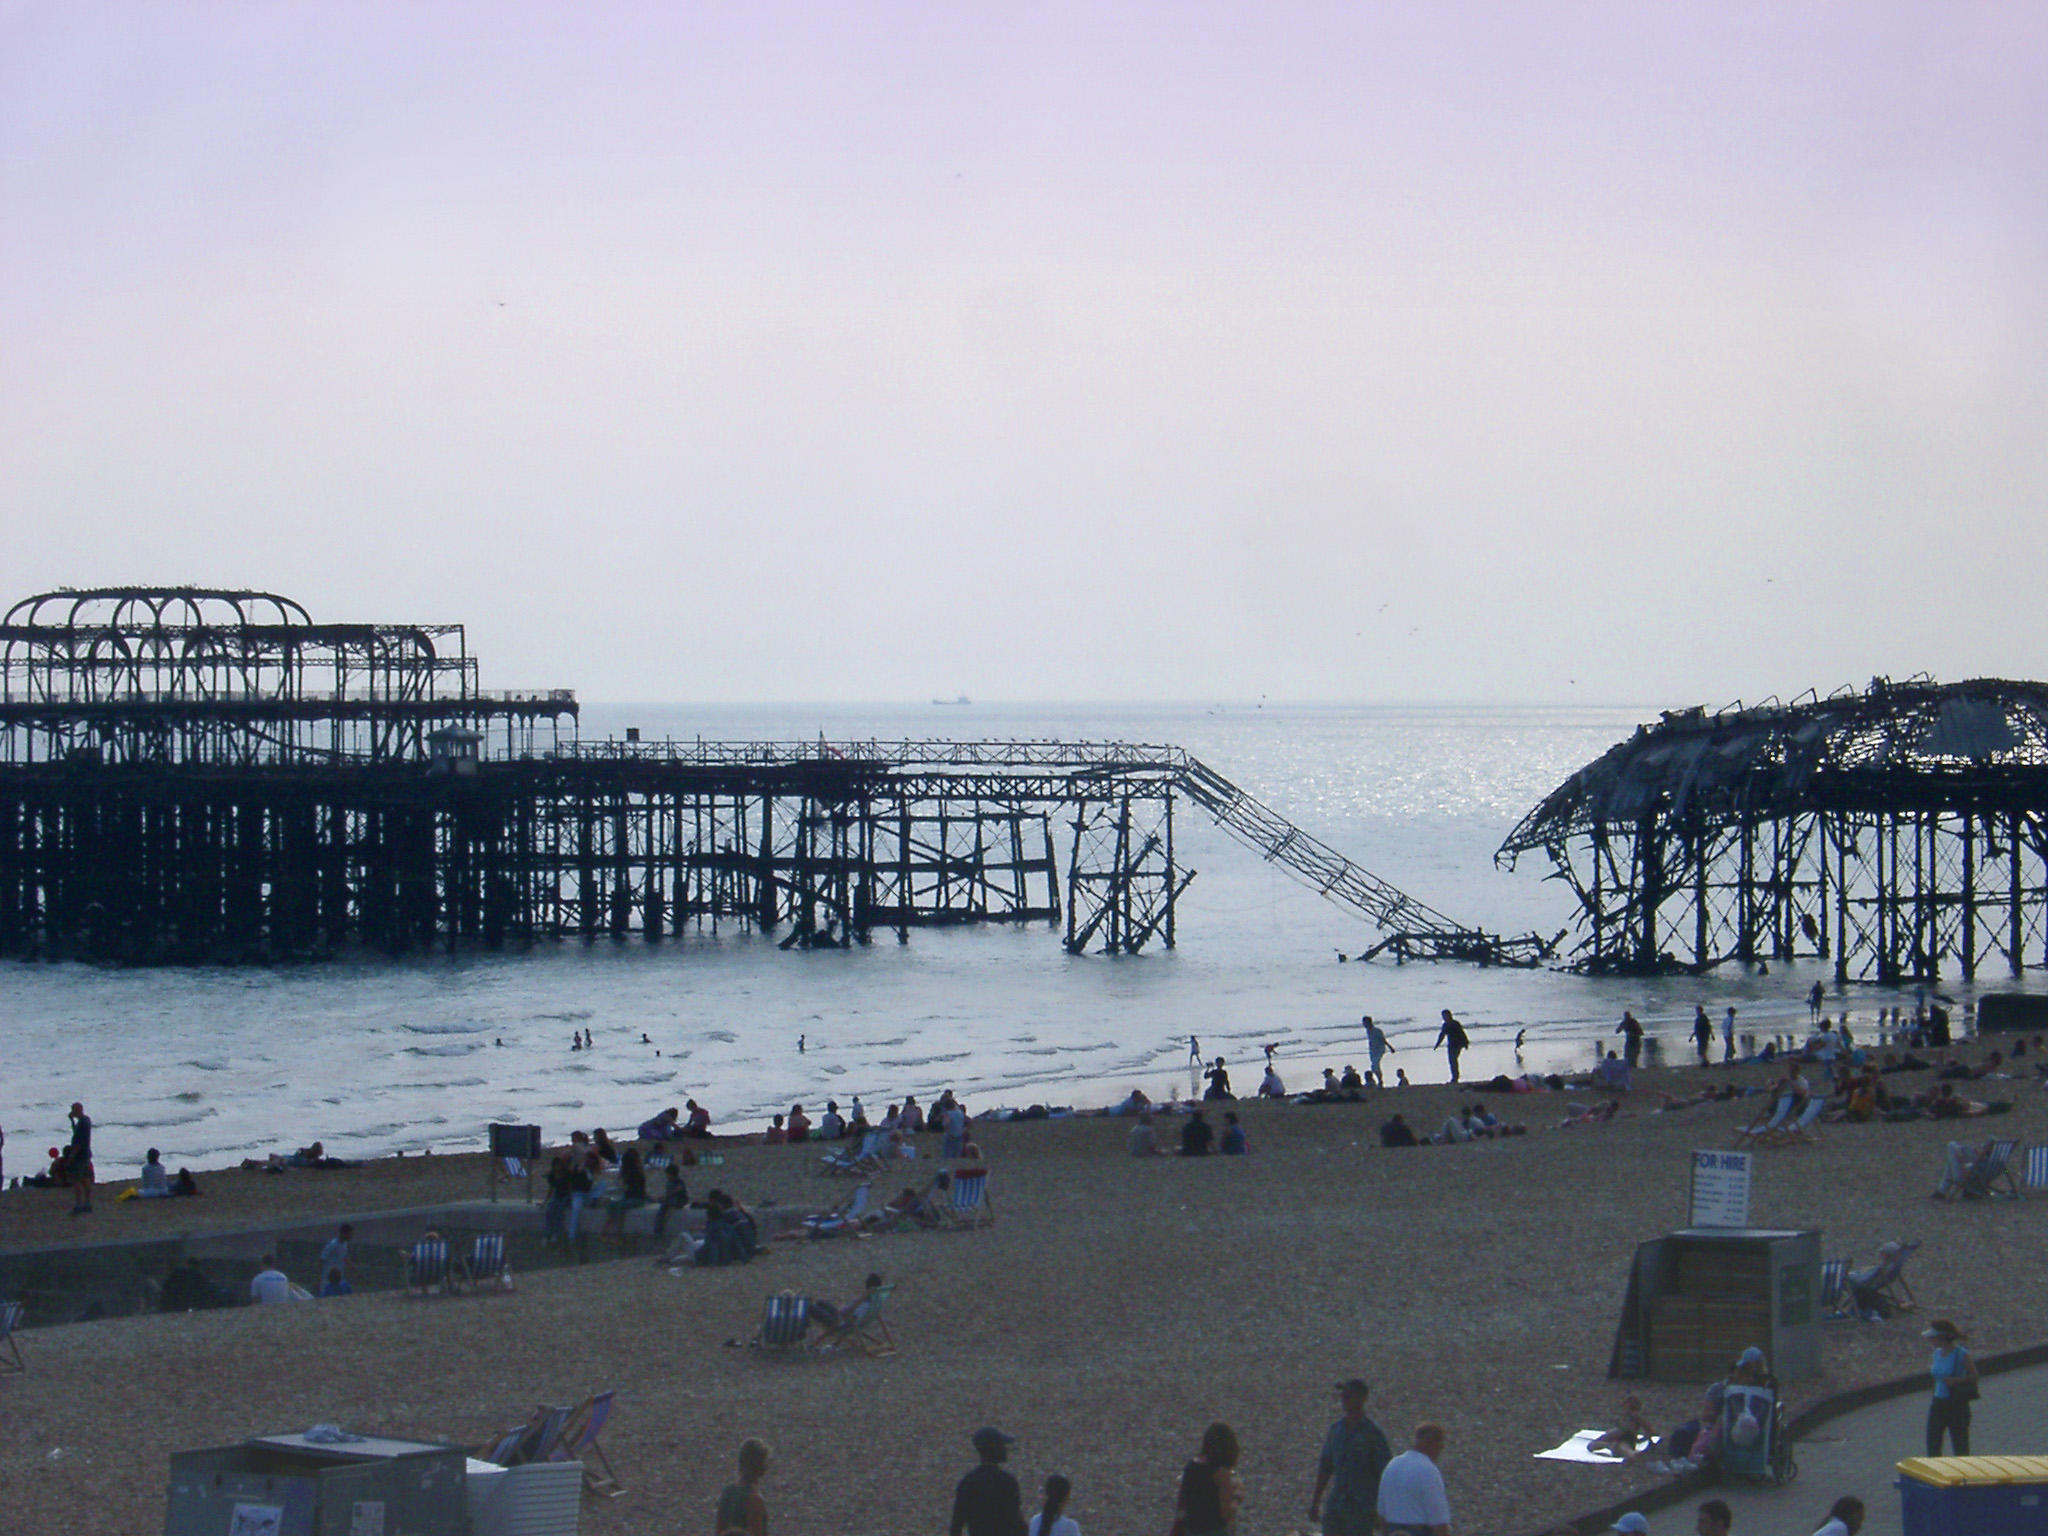 Remnants of the badly damaged fire damaged Brighton pier partially collapsed into the sea with people on the beach in the foreground